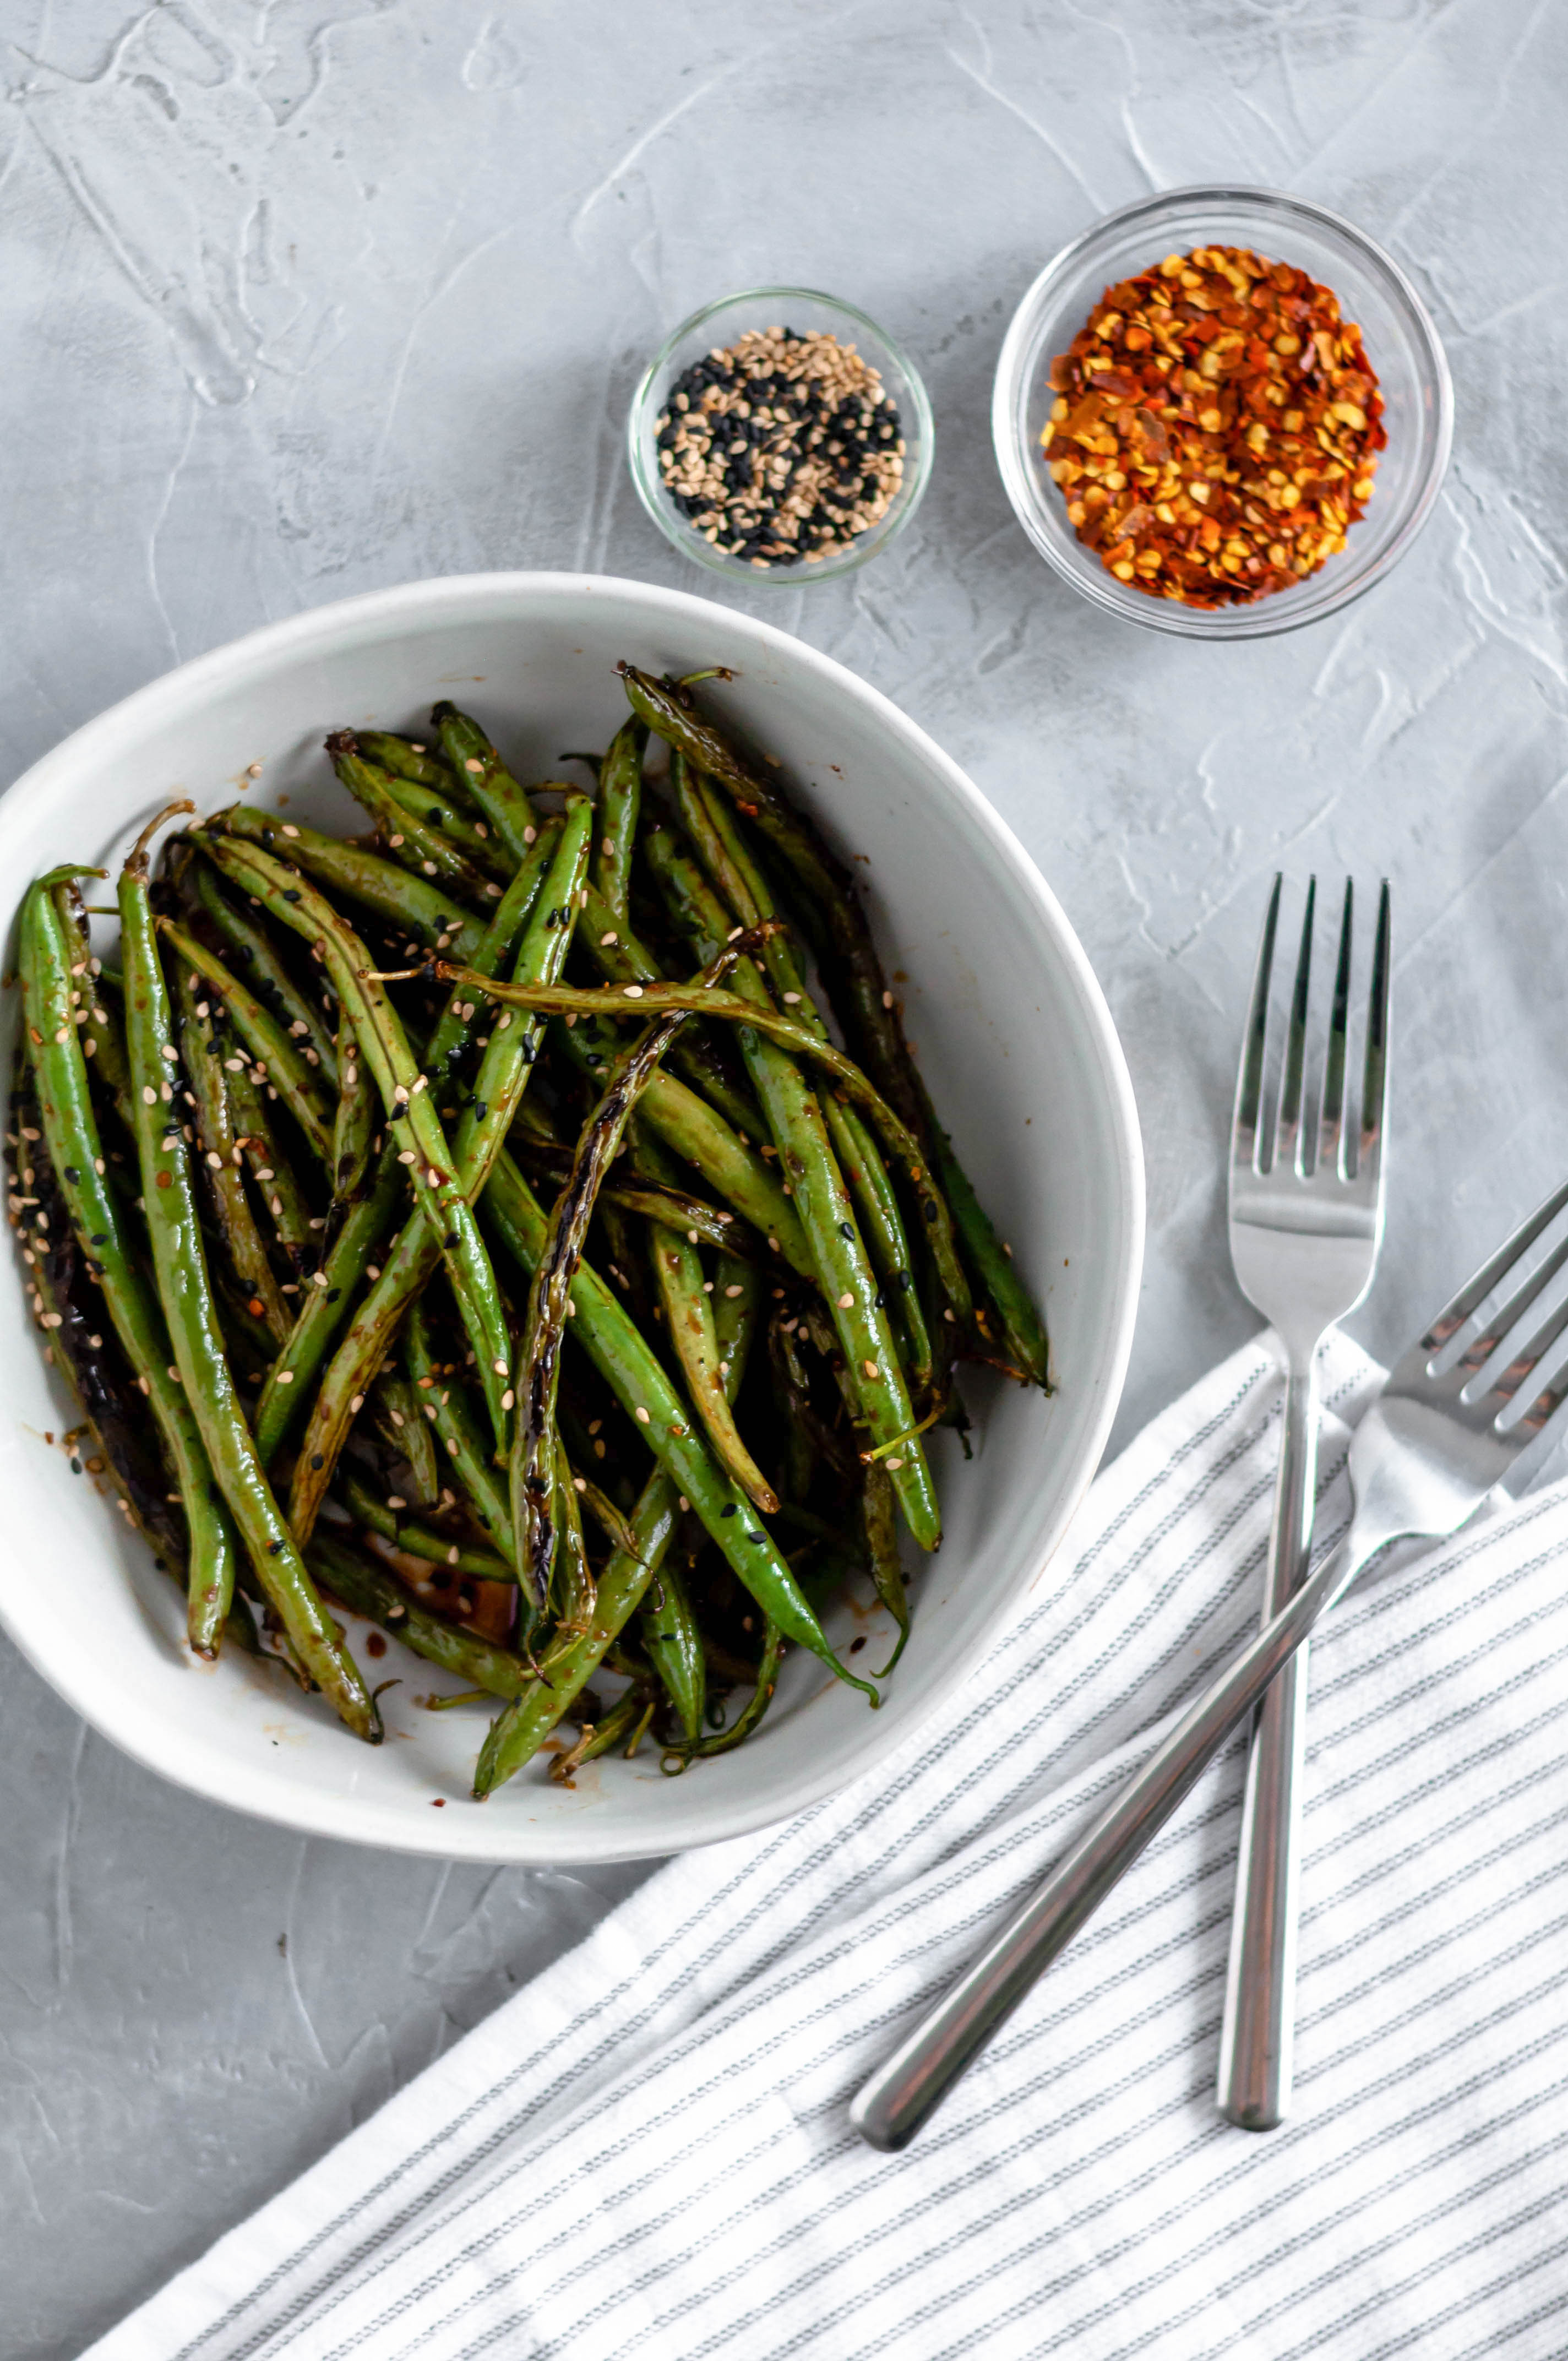 In need of a quick, simple and healthy side dish? These Asian Green Beans take minutes to make and are packed with flavor.